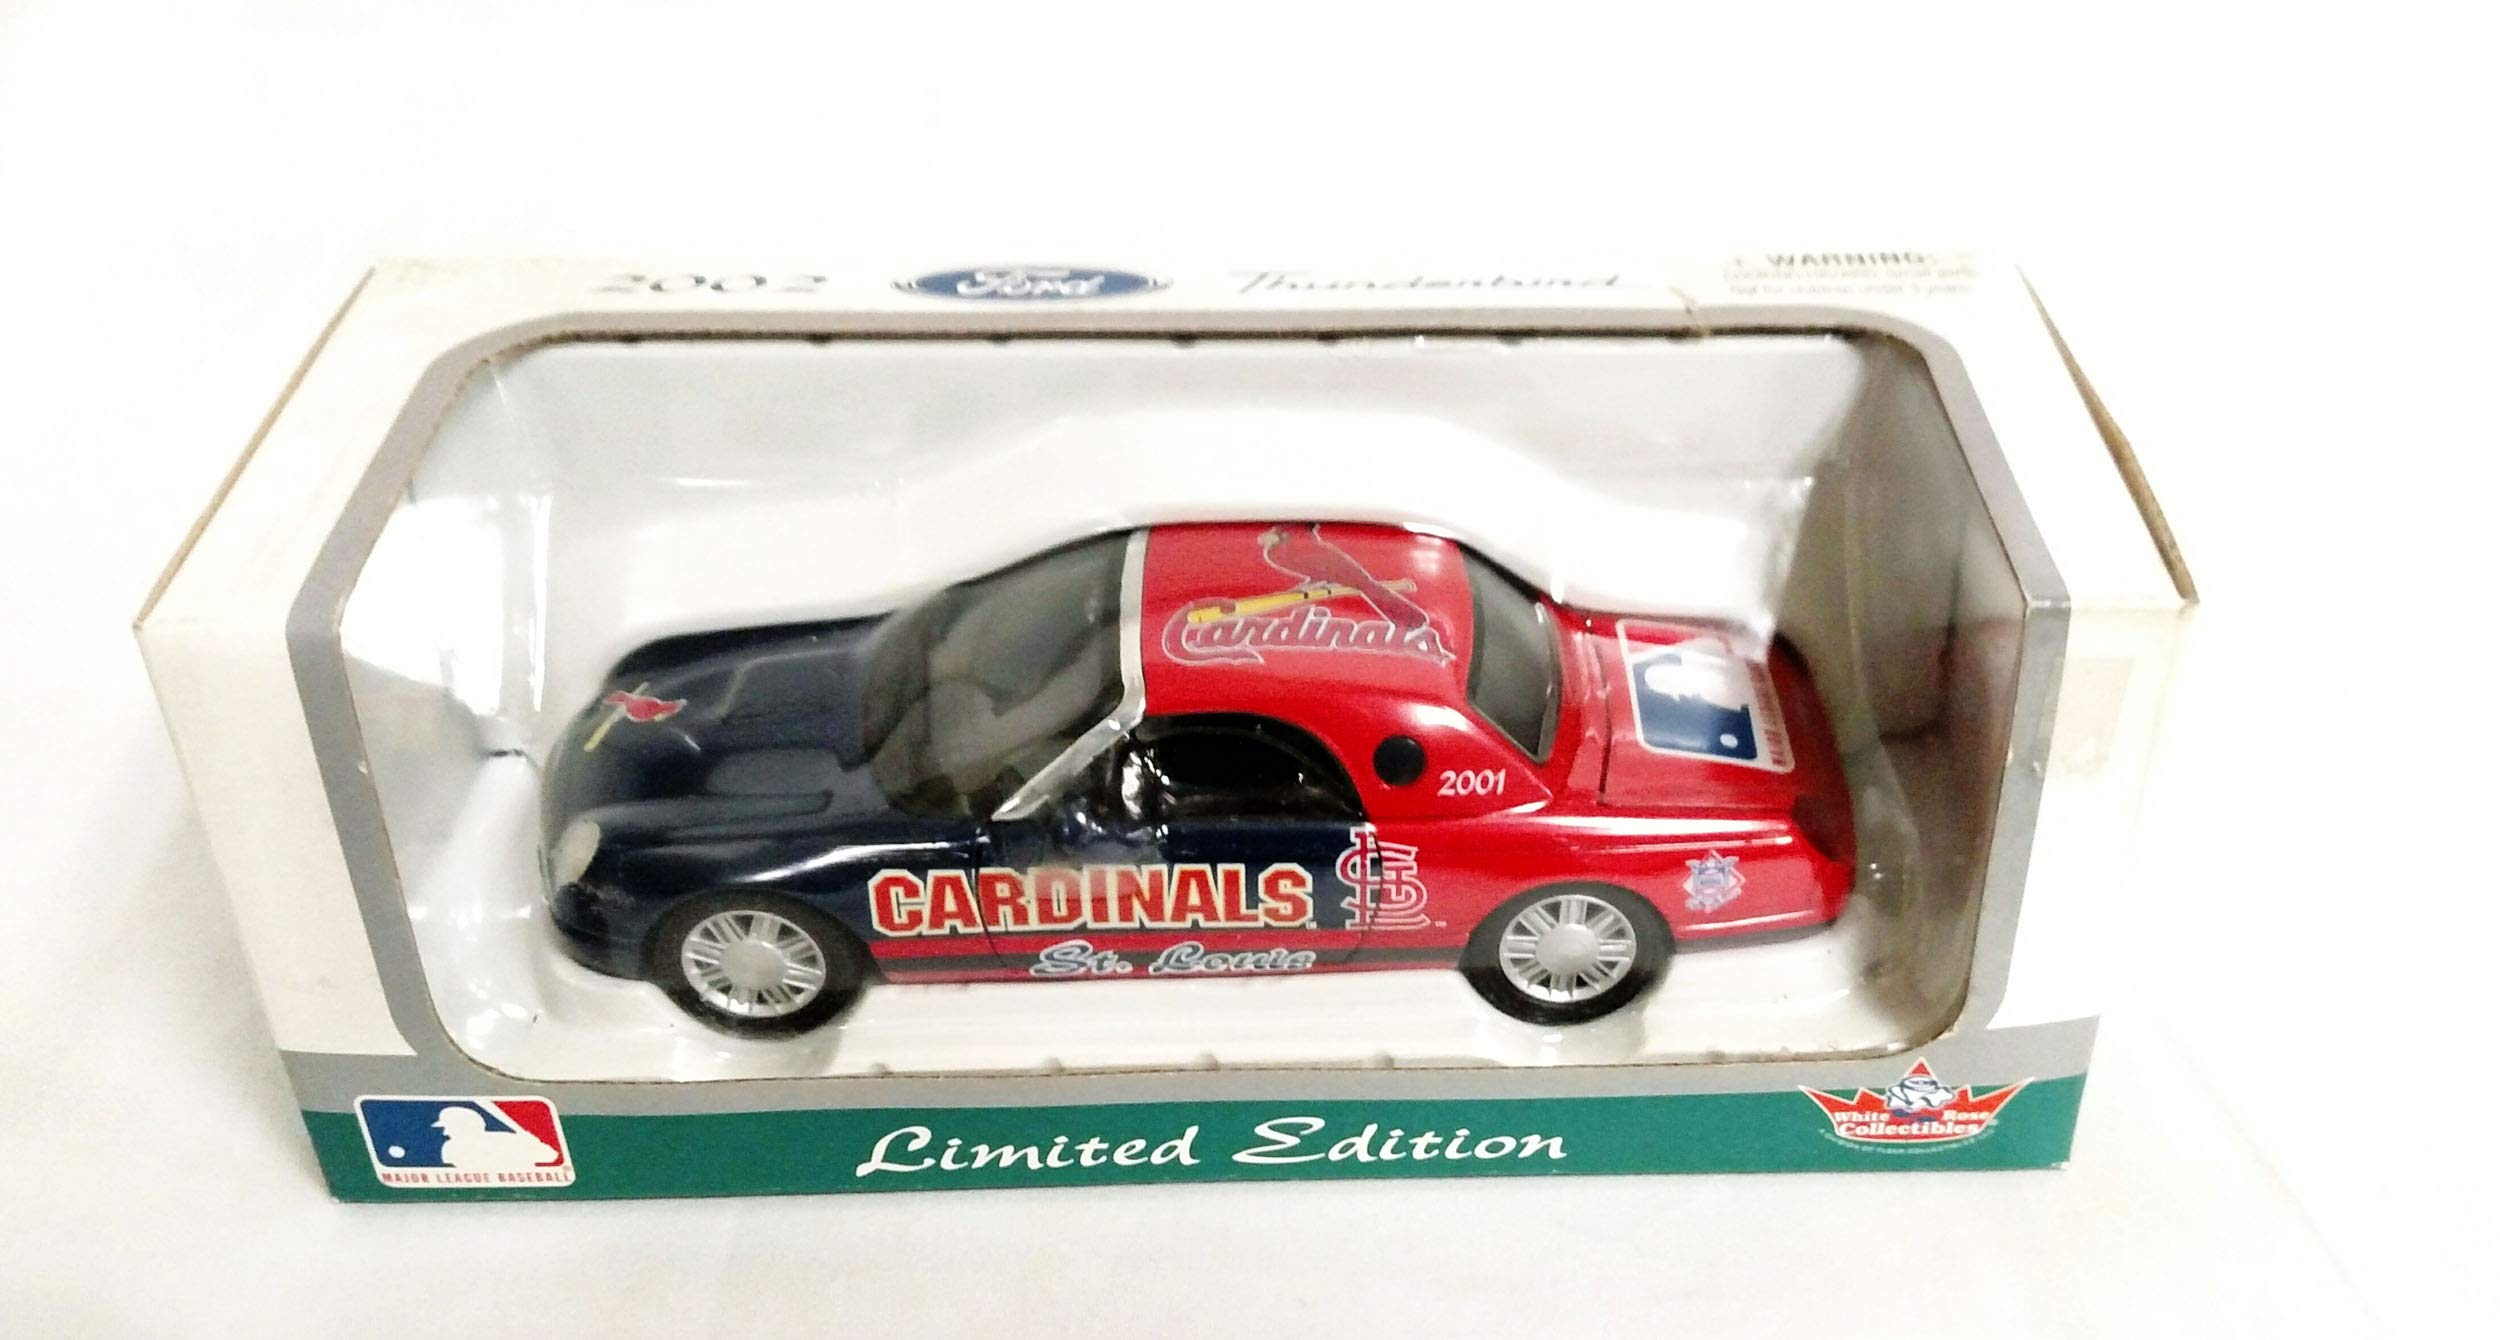 St. Louis Cardinals 2002 Ford Thunderbird Limited Edition Die Cast Collectible